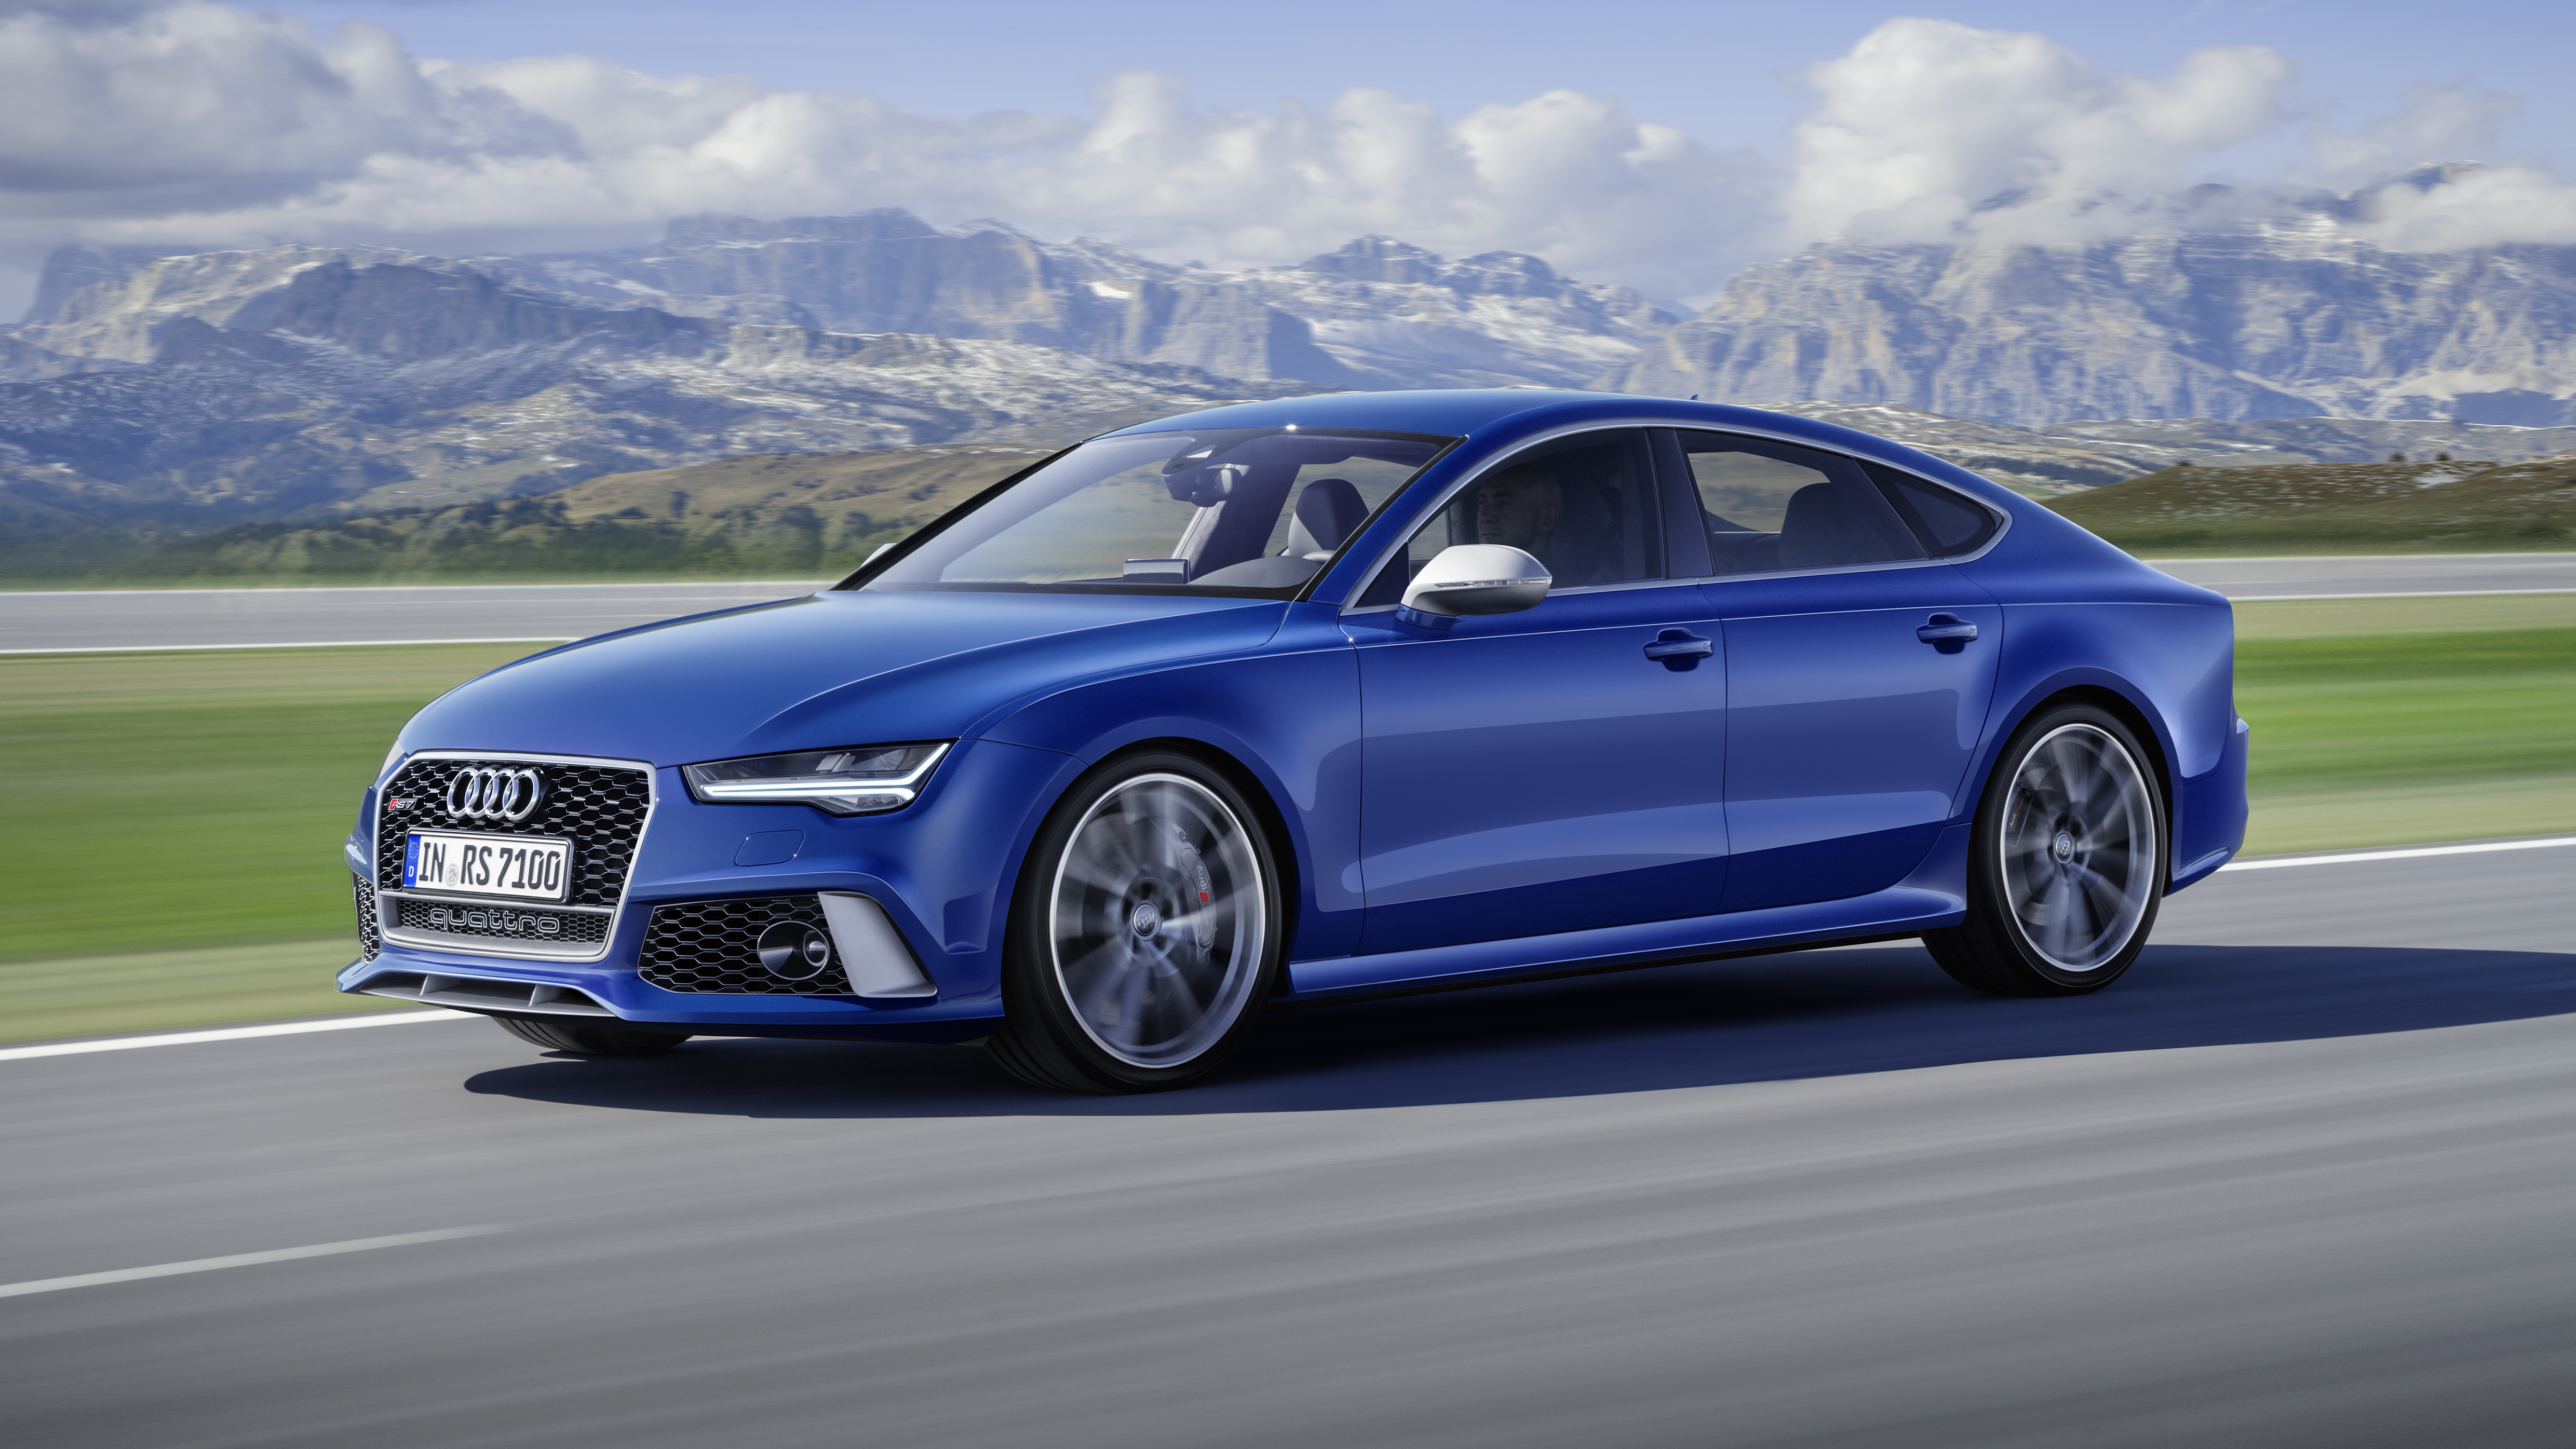 Audi Rs7 0 60 >> Review The 597bhp Audi Rs7 Performance 2015 2018 Top Gear